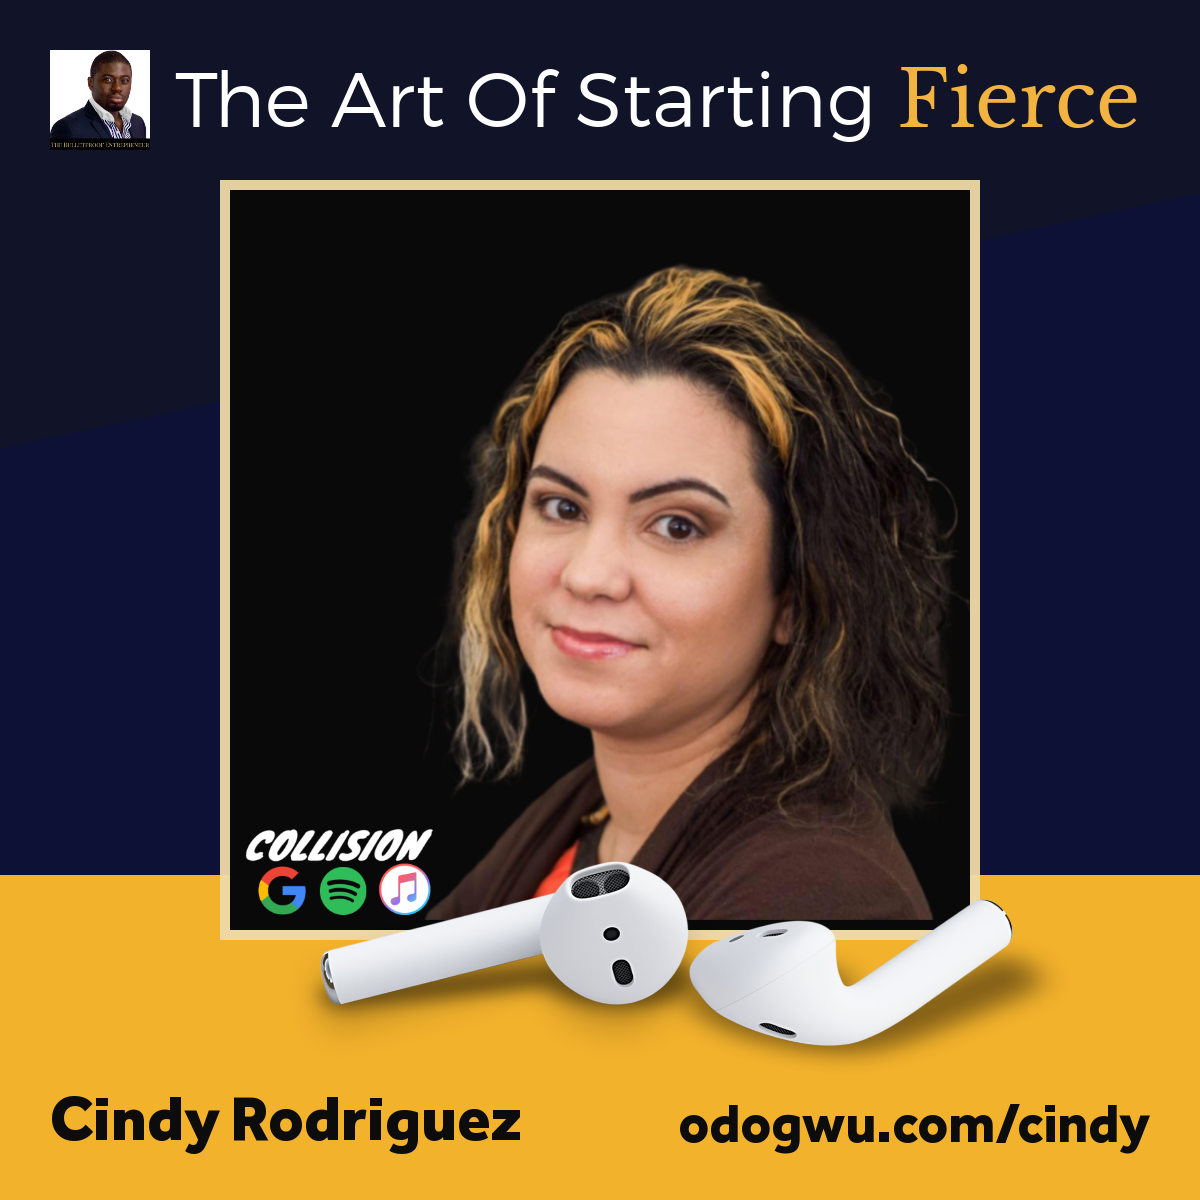 Cindy Rodriguez Discusses The Art Of Starting Fierce